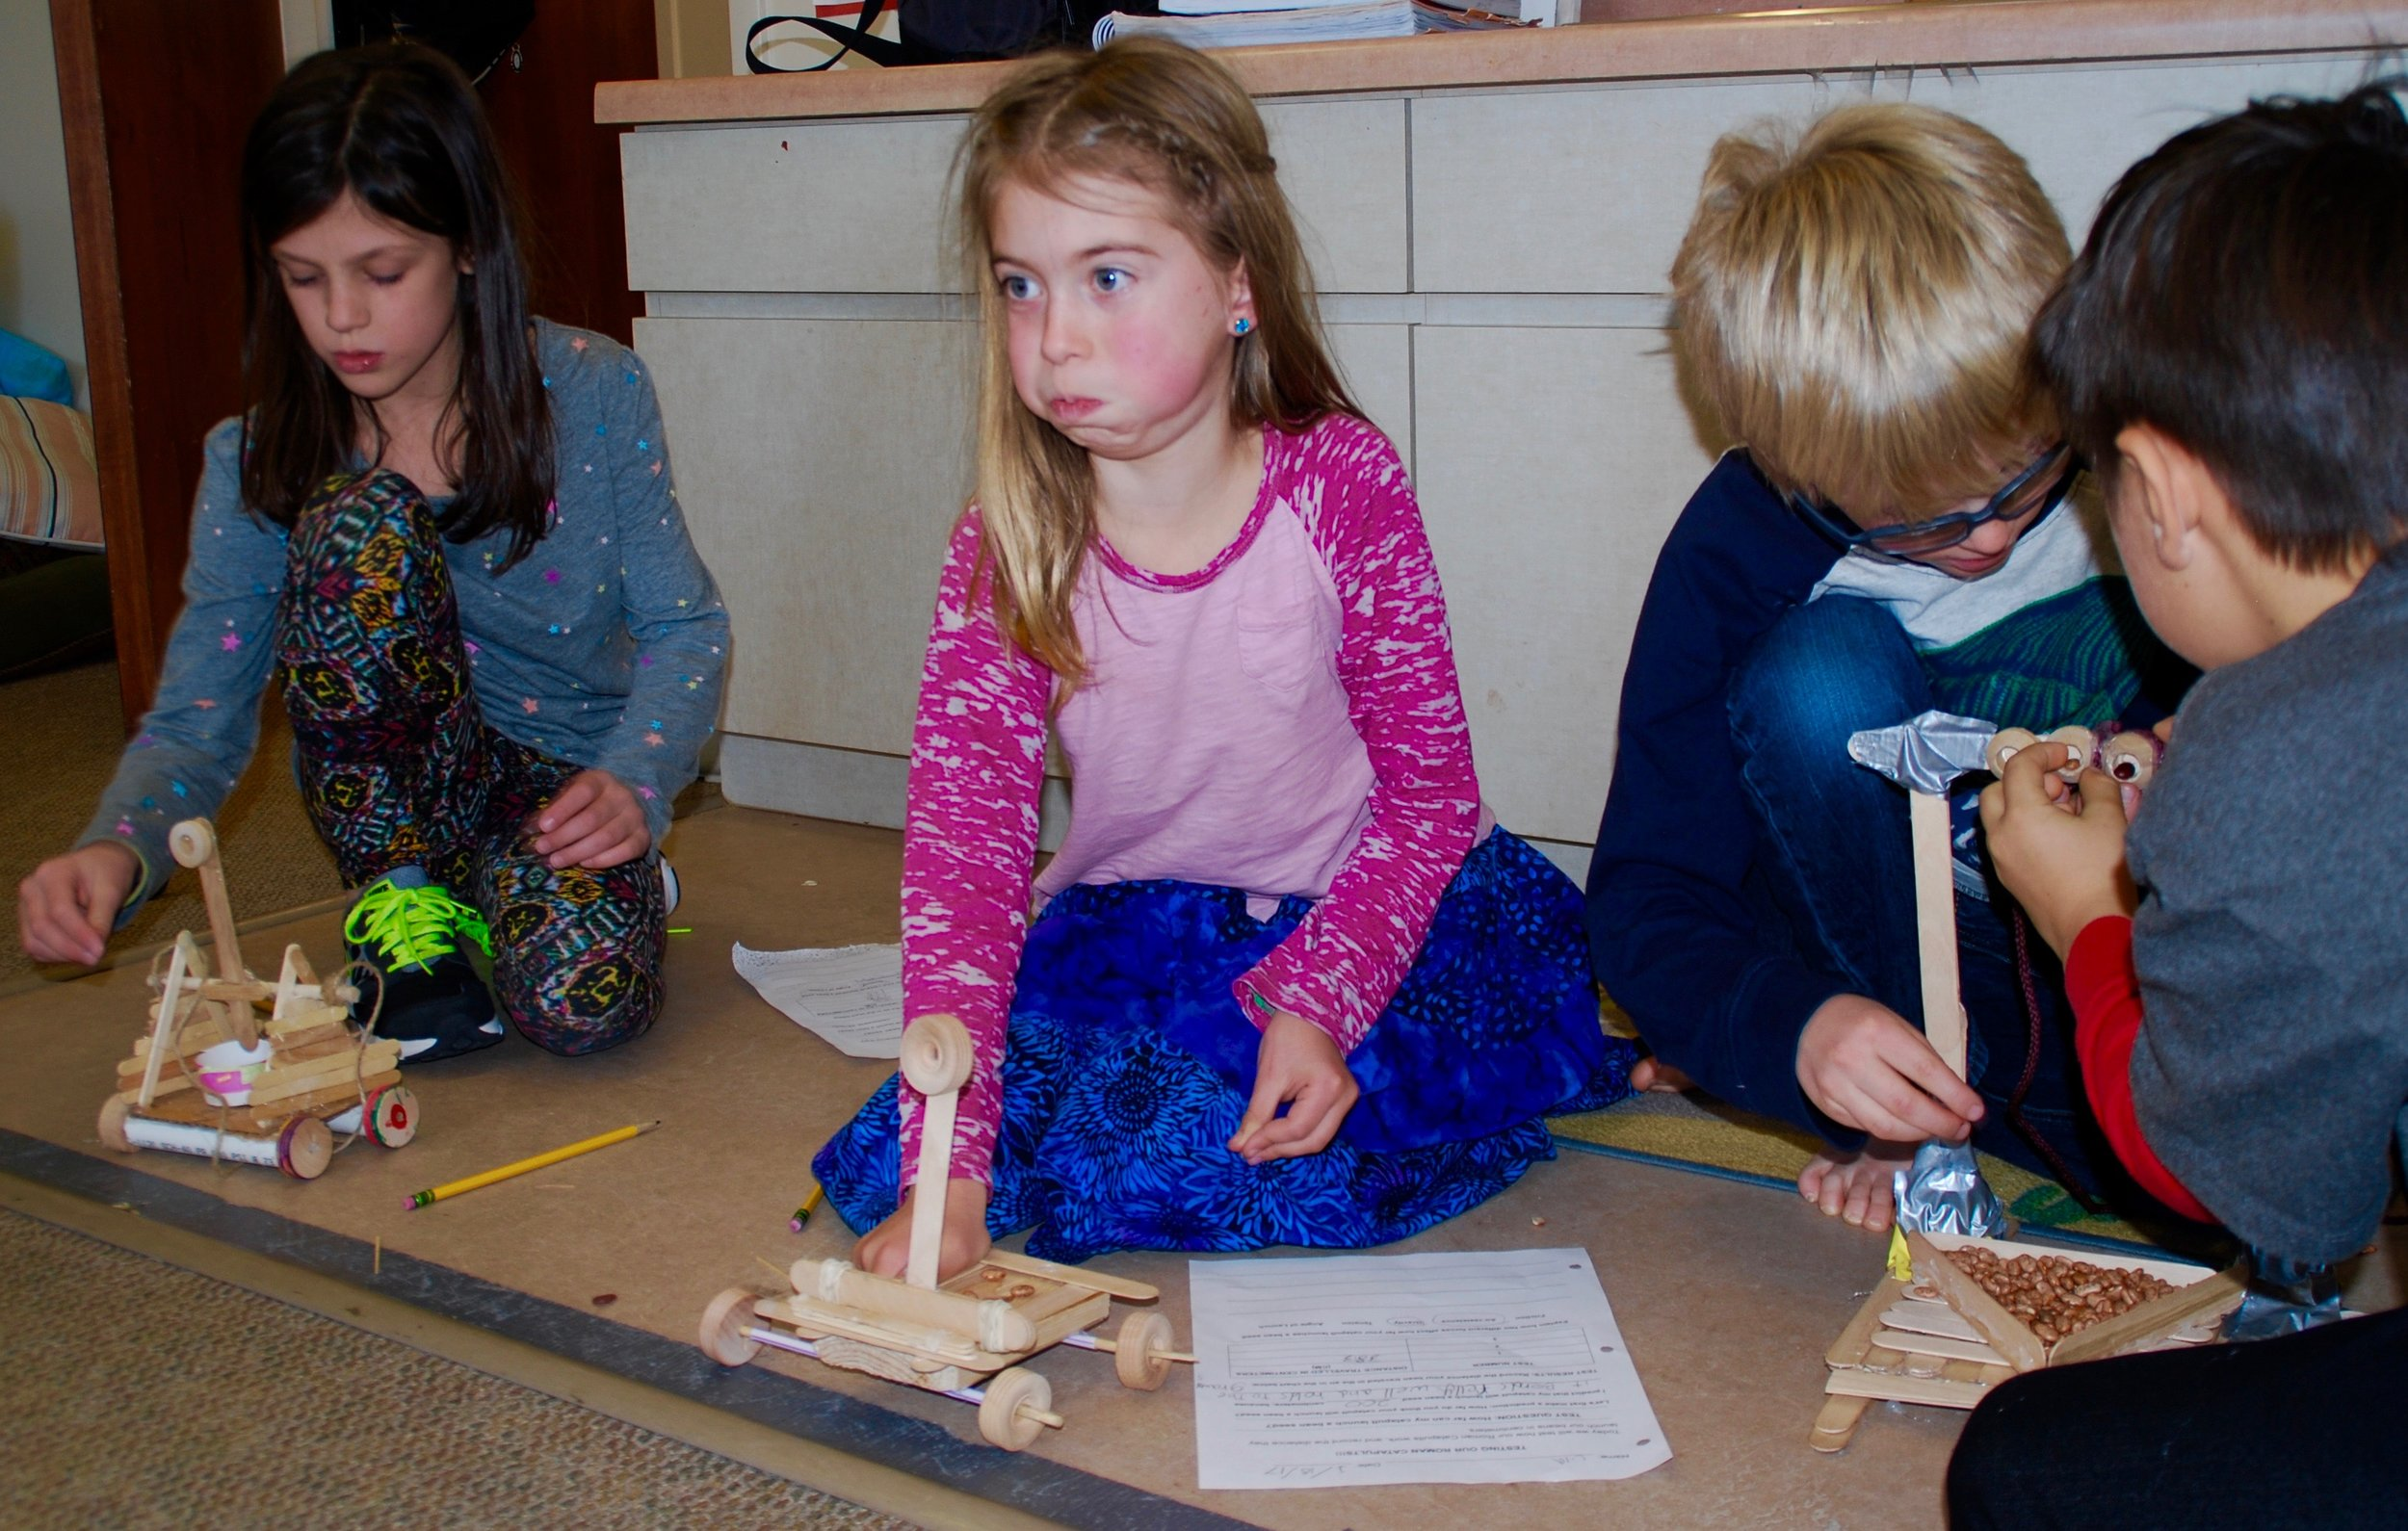 Researching, designing, building, testing and rebuilding Roman catapults - an integrated science and math project.